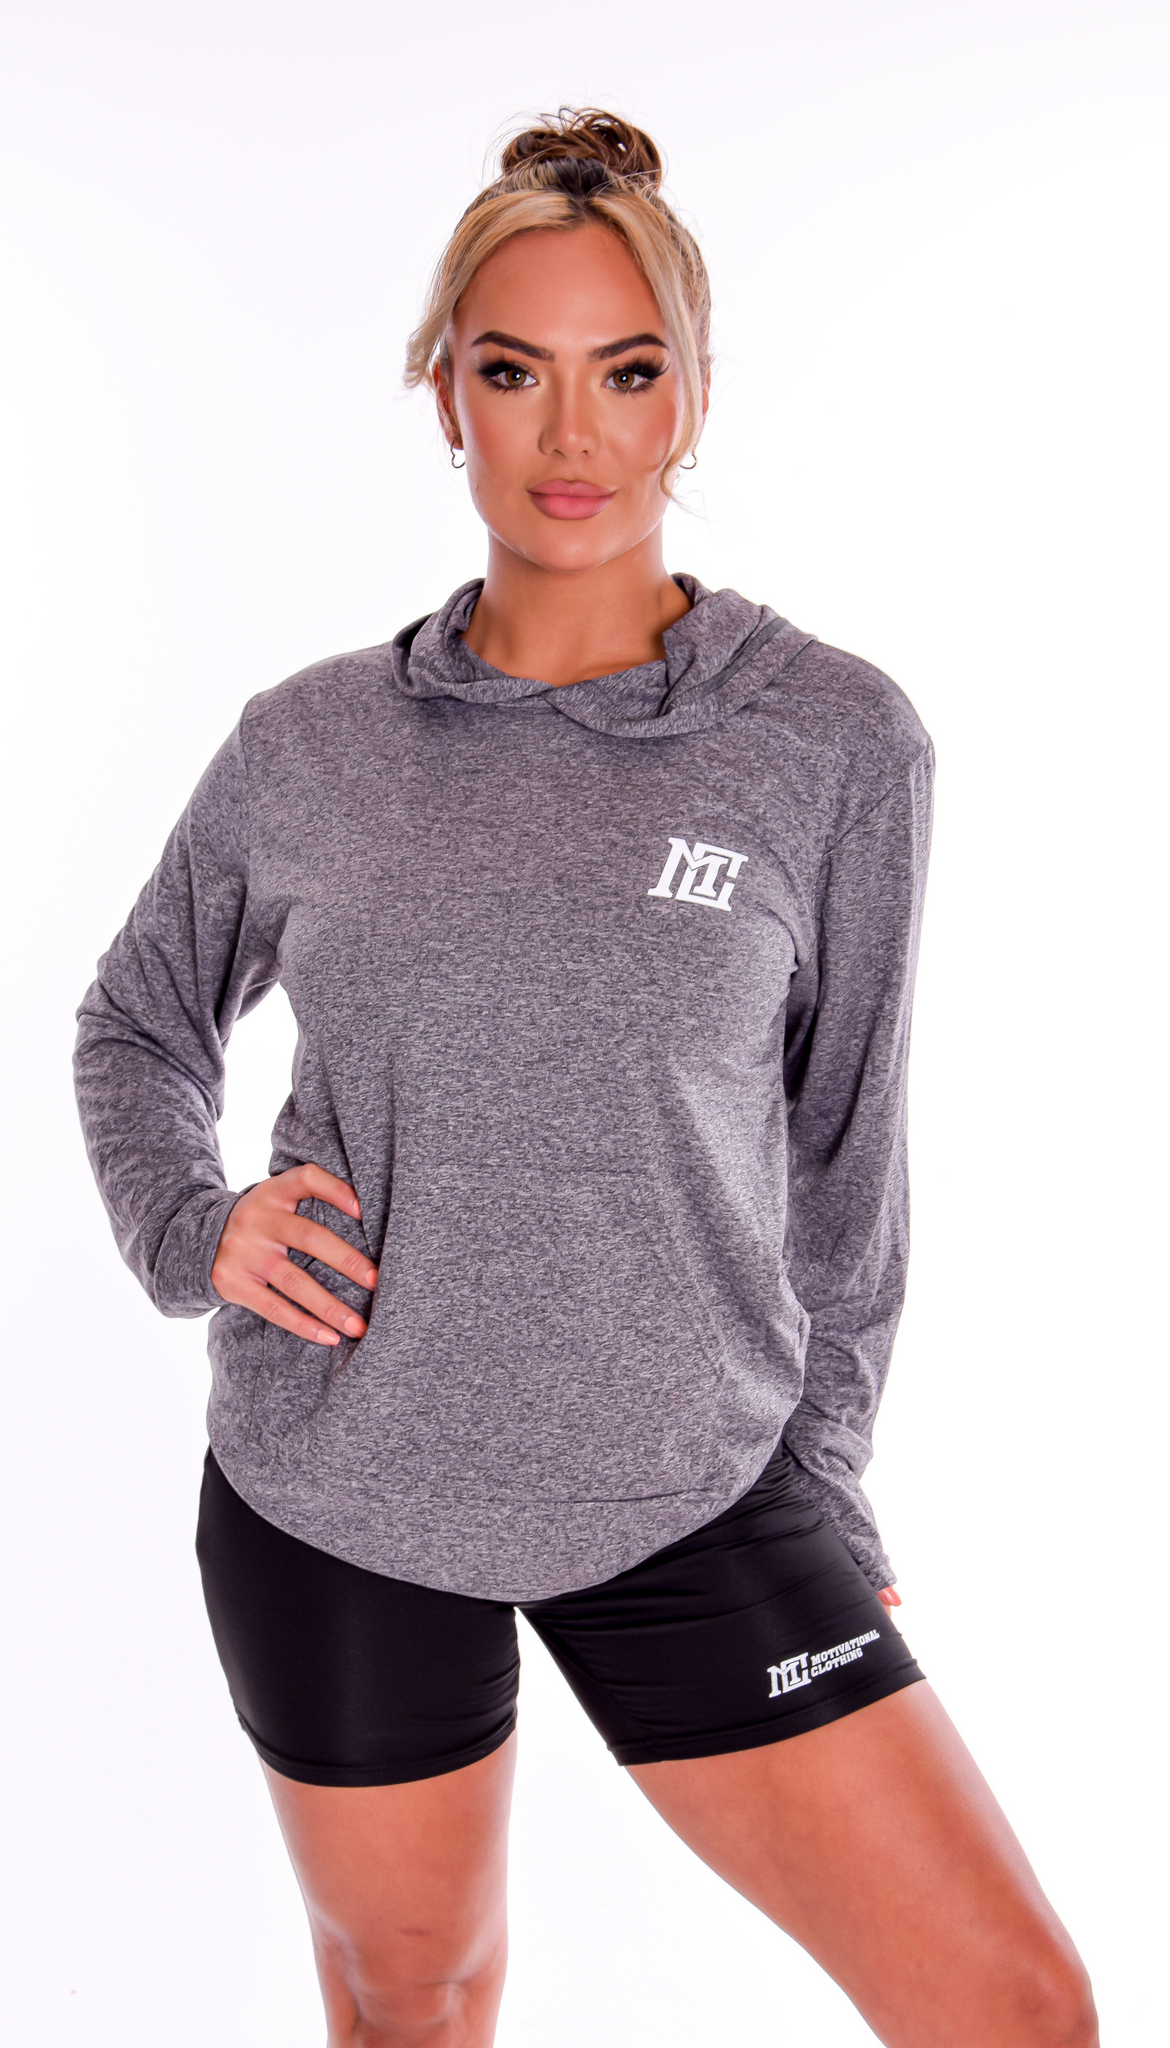 Womens - Motivational Clothing (Blue/Grey) Hoodie - Motivational Clothing Ltd